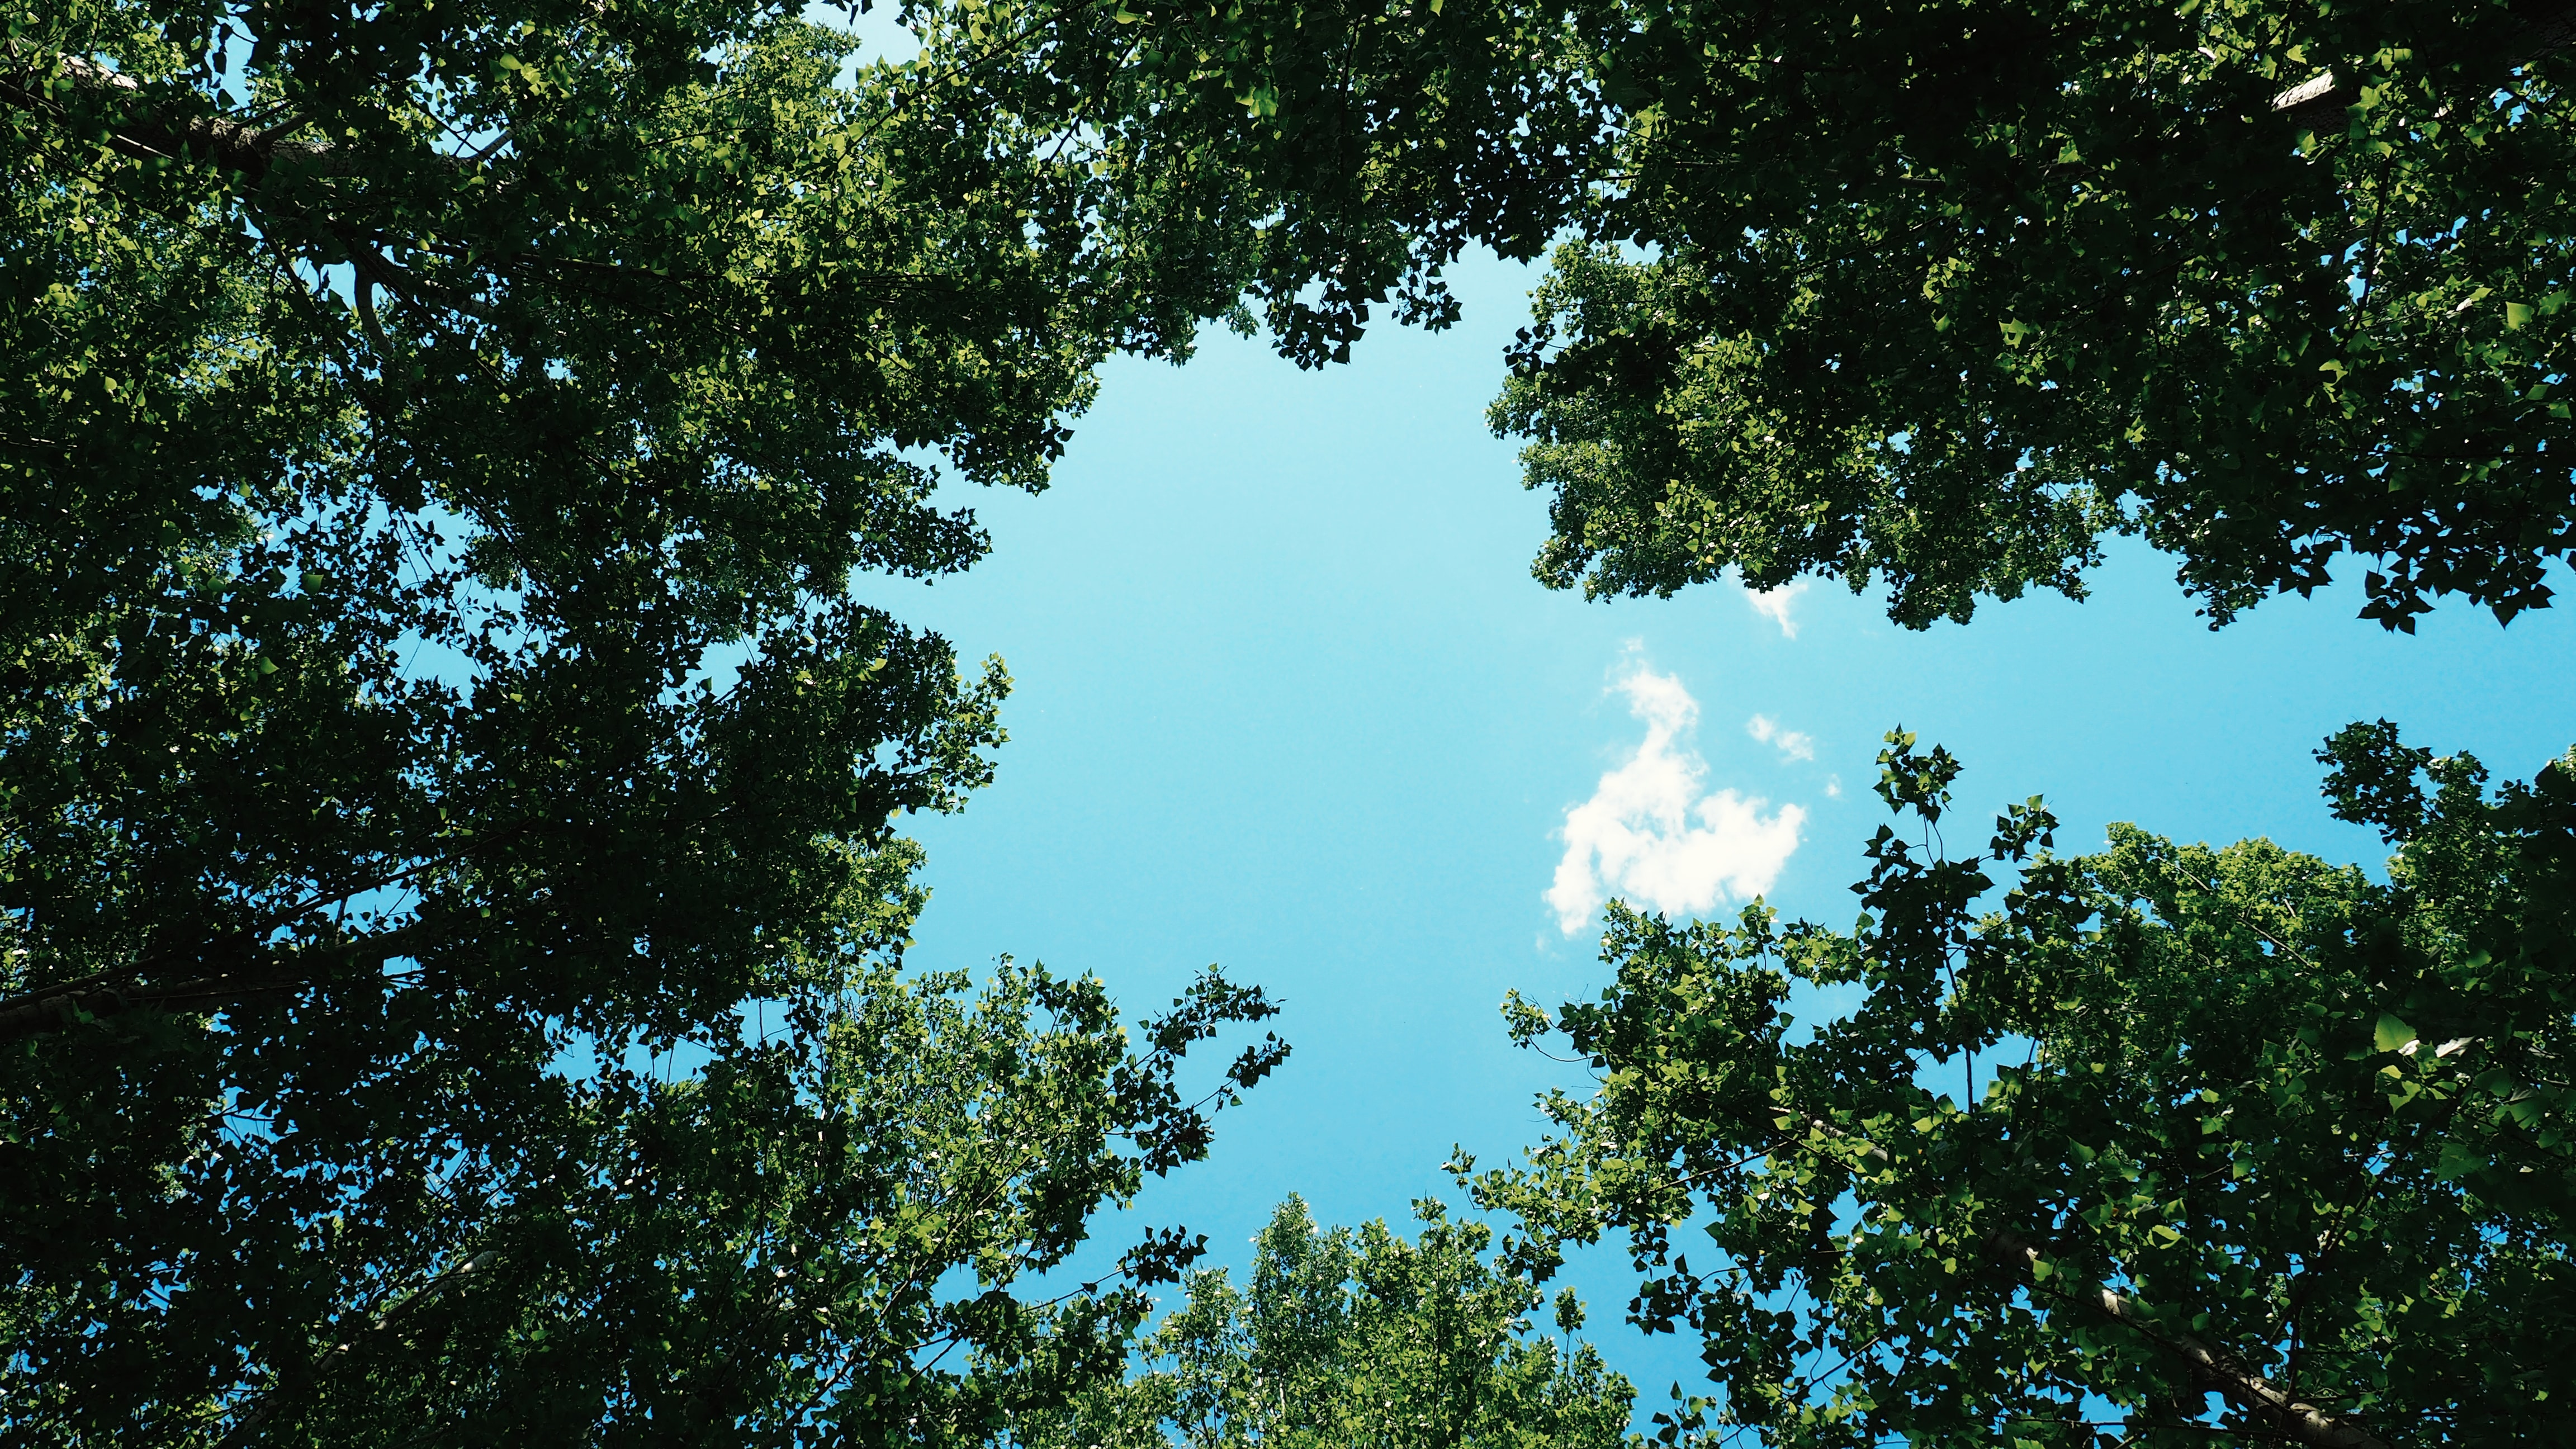 A low-angle shot of a green leaf canopy against a blue sky